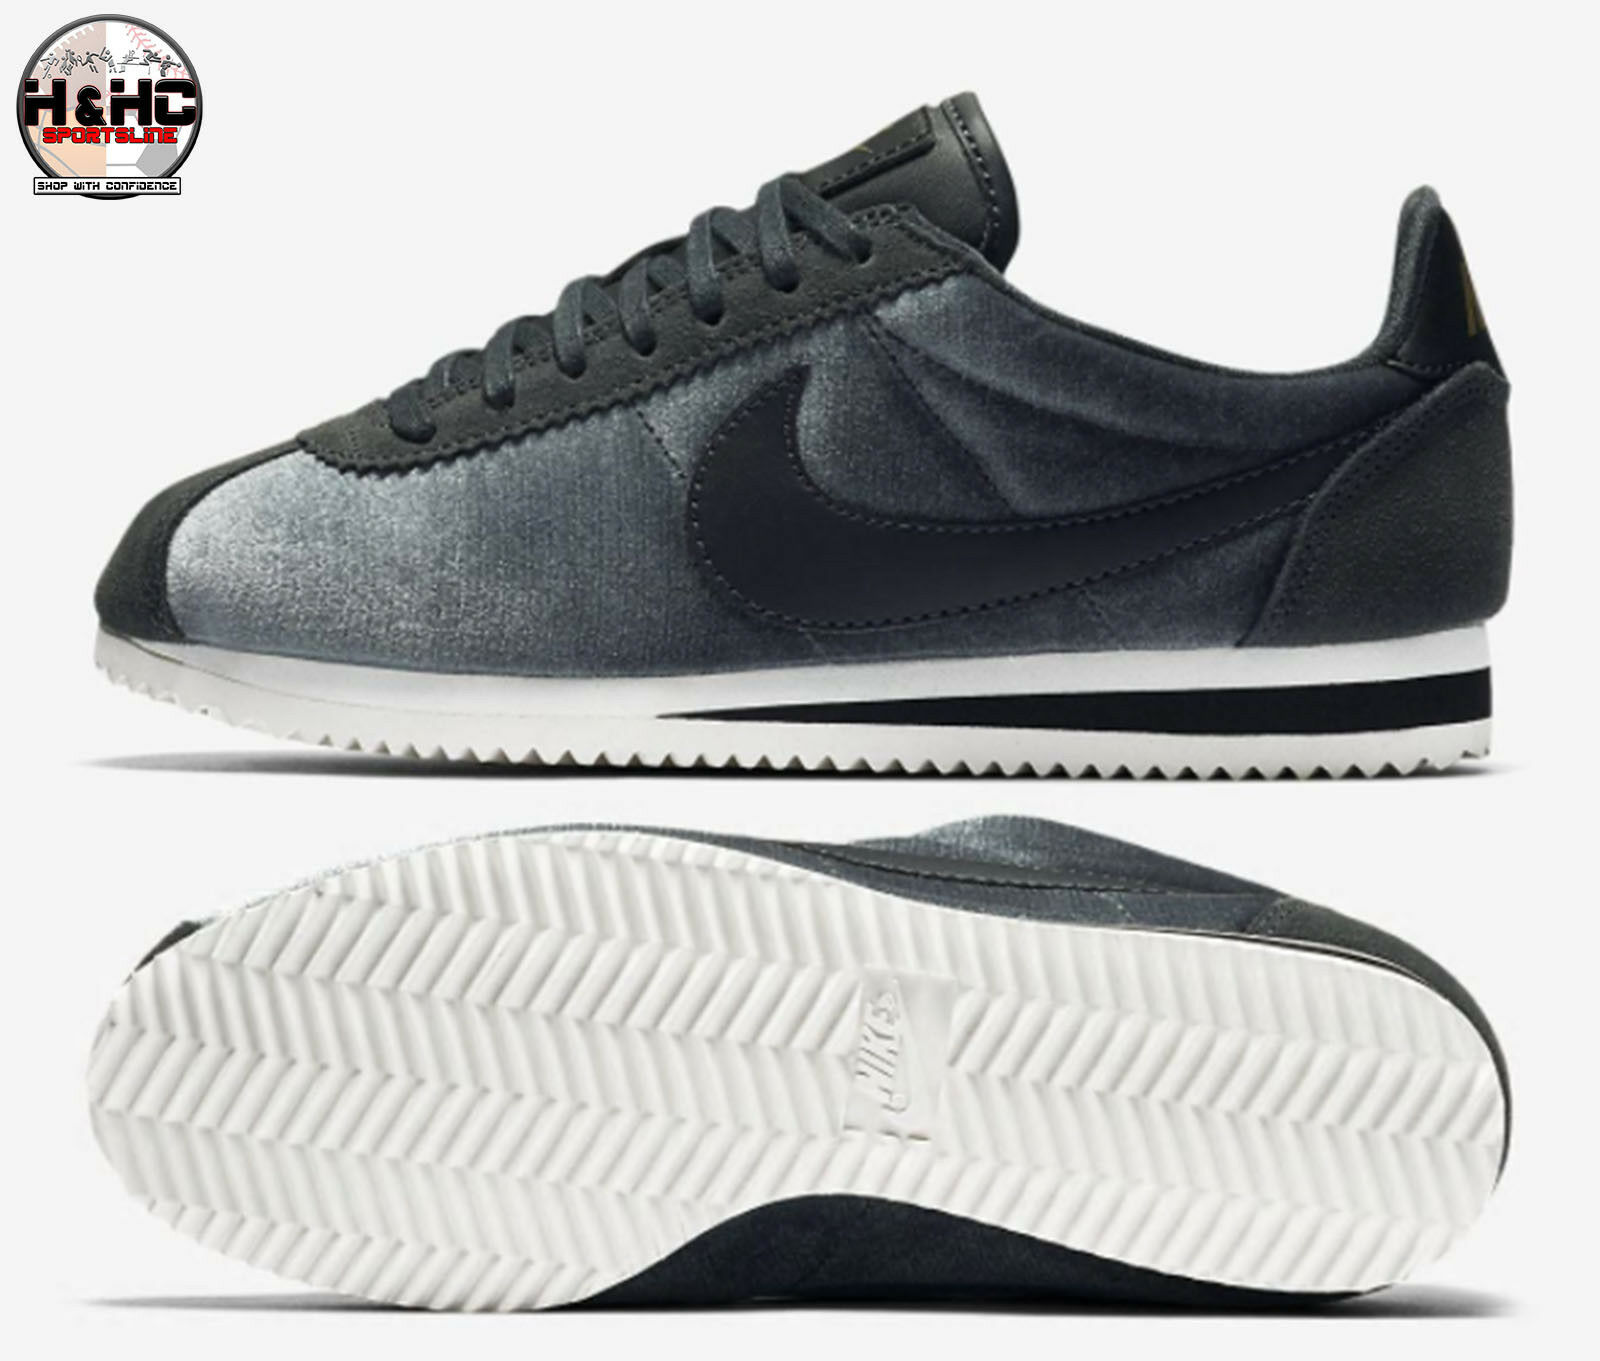 Nike Classic Cortez Sz SE 902856 012 Anthracite/Black Women's Shoes Sz Cortez 9.5 bf8211